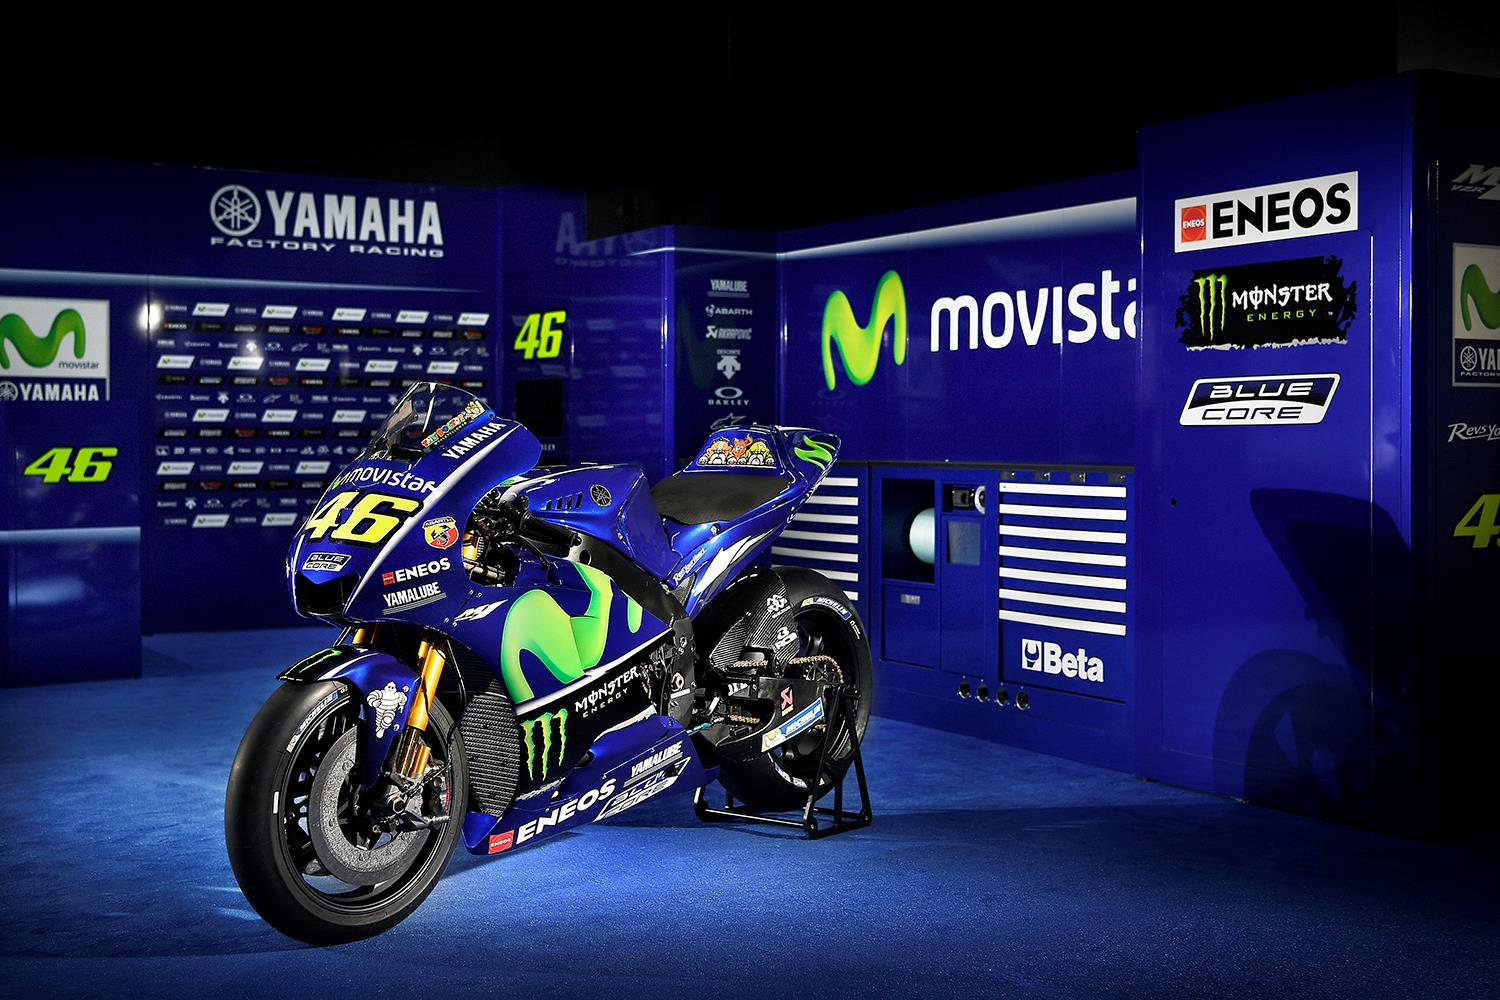 motogp: yamaha unveil 2017 movistar colours in madrid | mcn